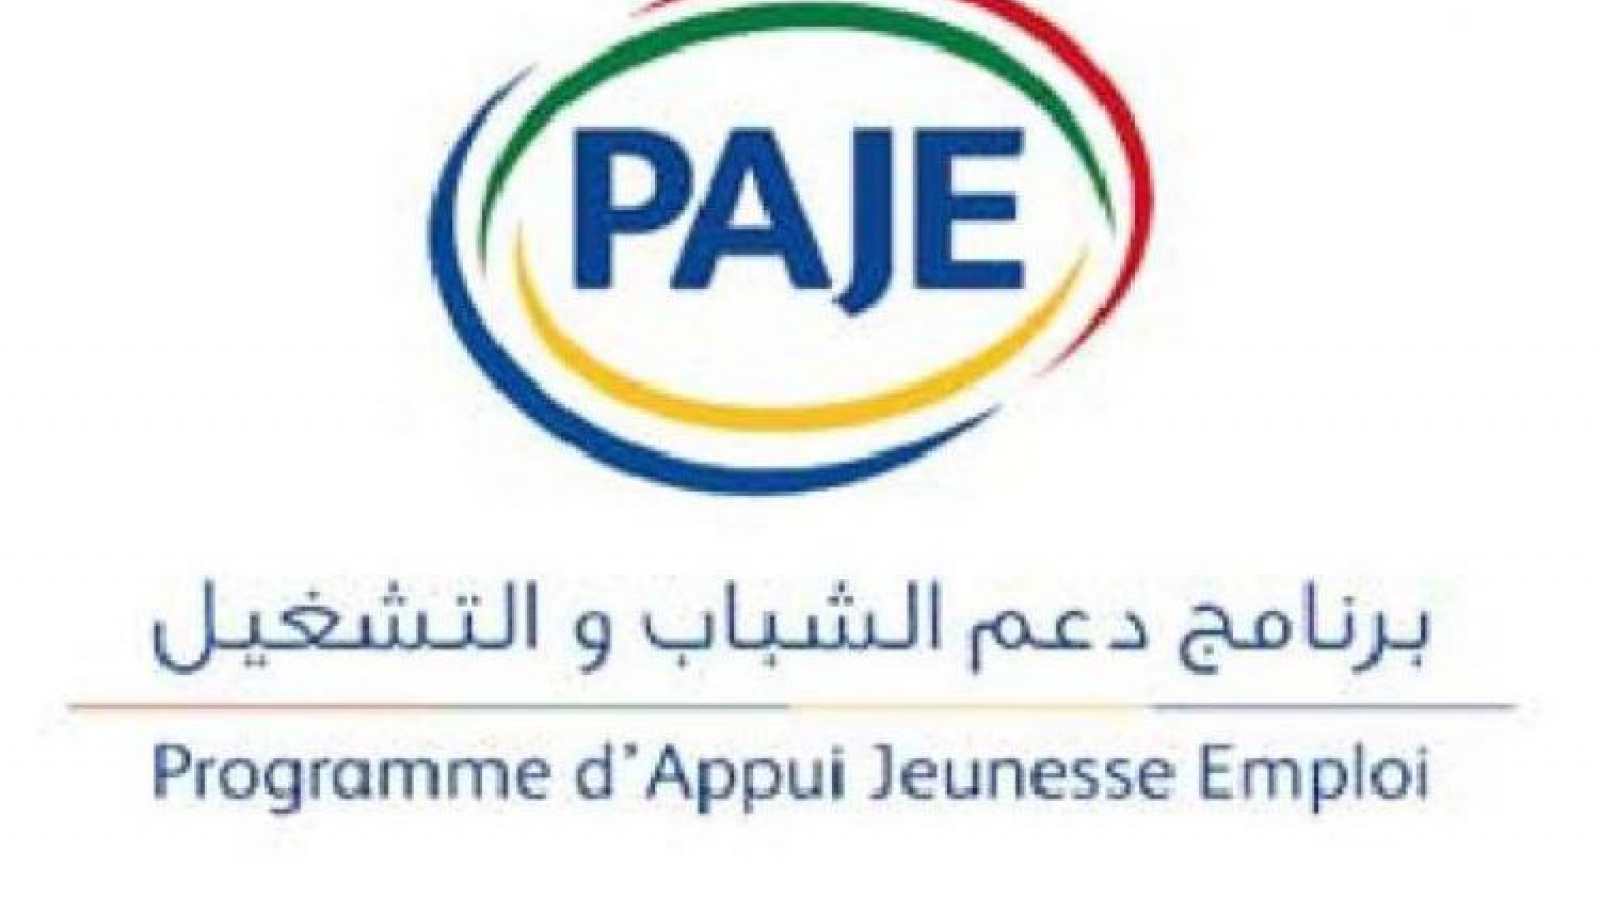 Algeria: More than 100 non-profit projects created by EU-funded Support Programme Youth Employment